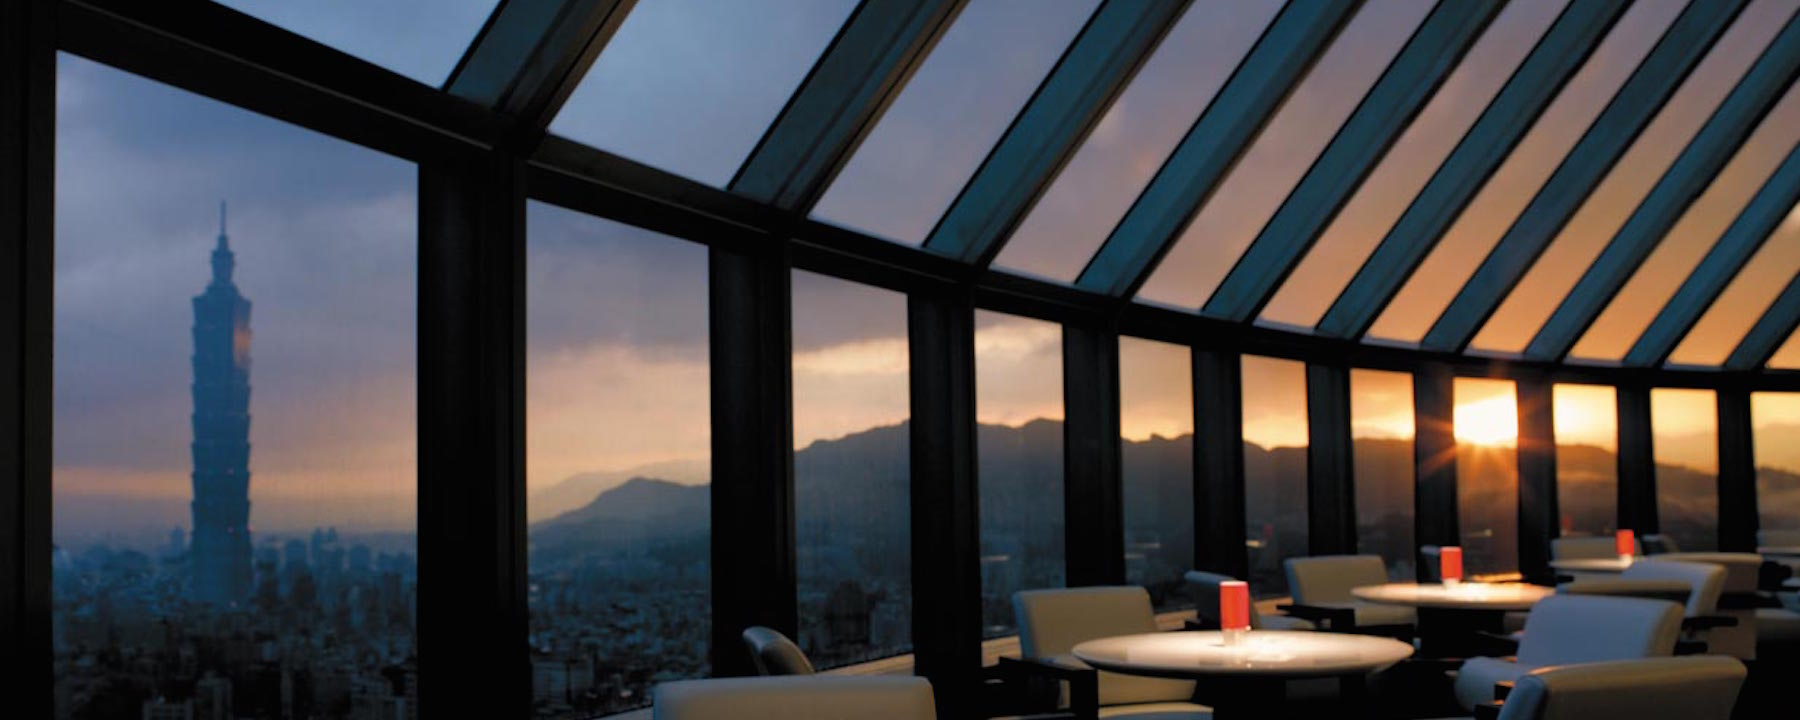 Hotel Eastern Plaza Shangri La Taipei Is 5 Star Luxury With Gorgeous Views Luxury